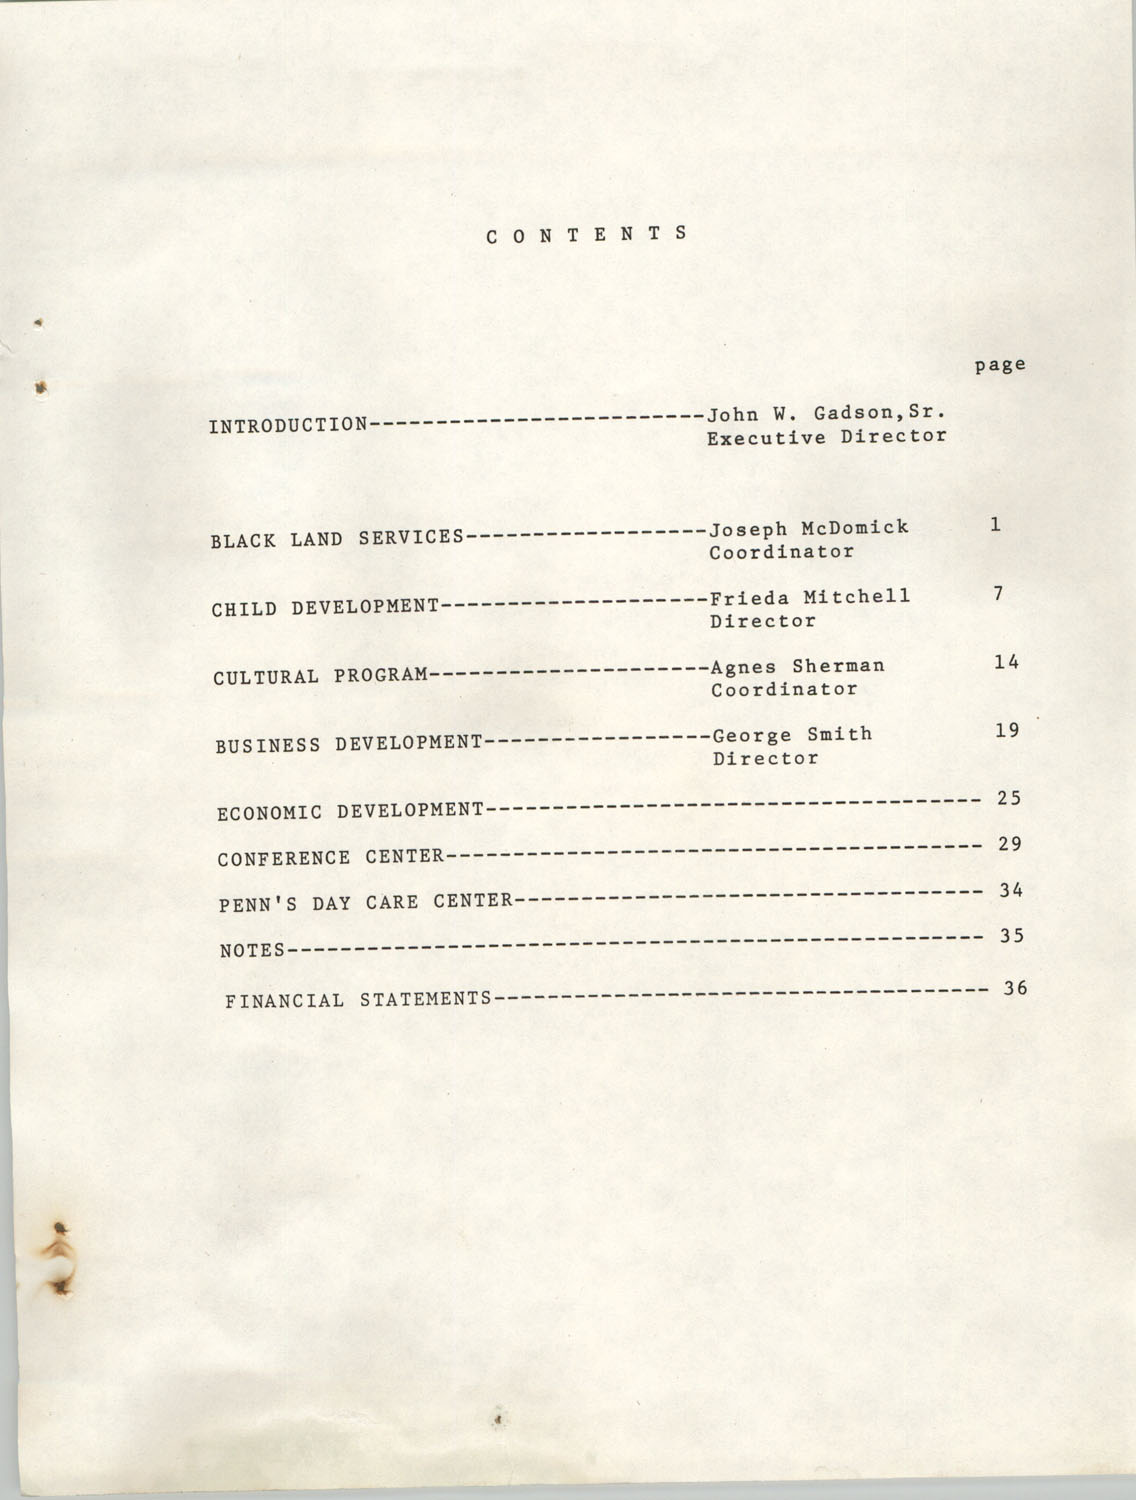 Annual Report, Penn Community Services, 1974, Contents Page